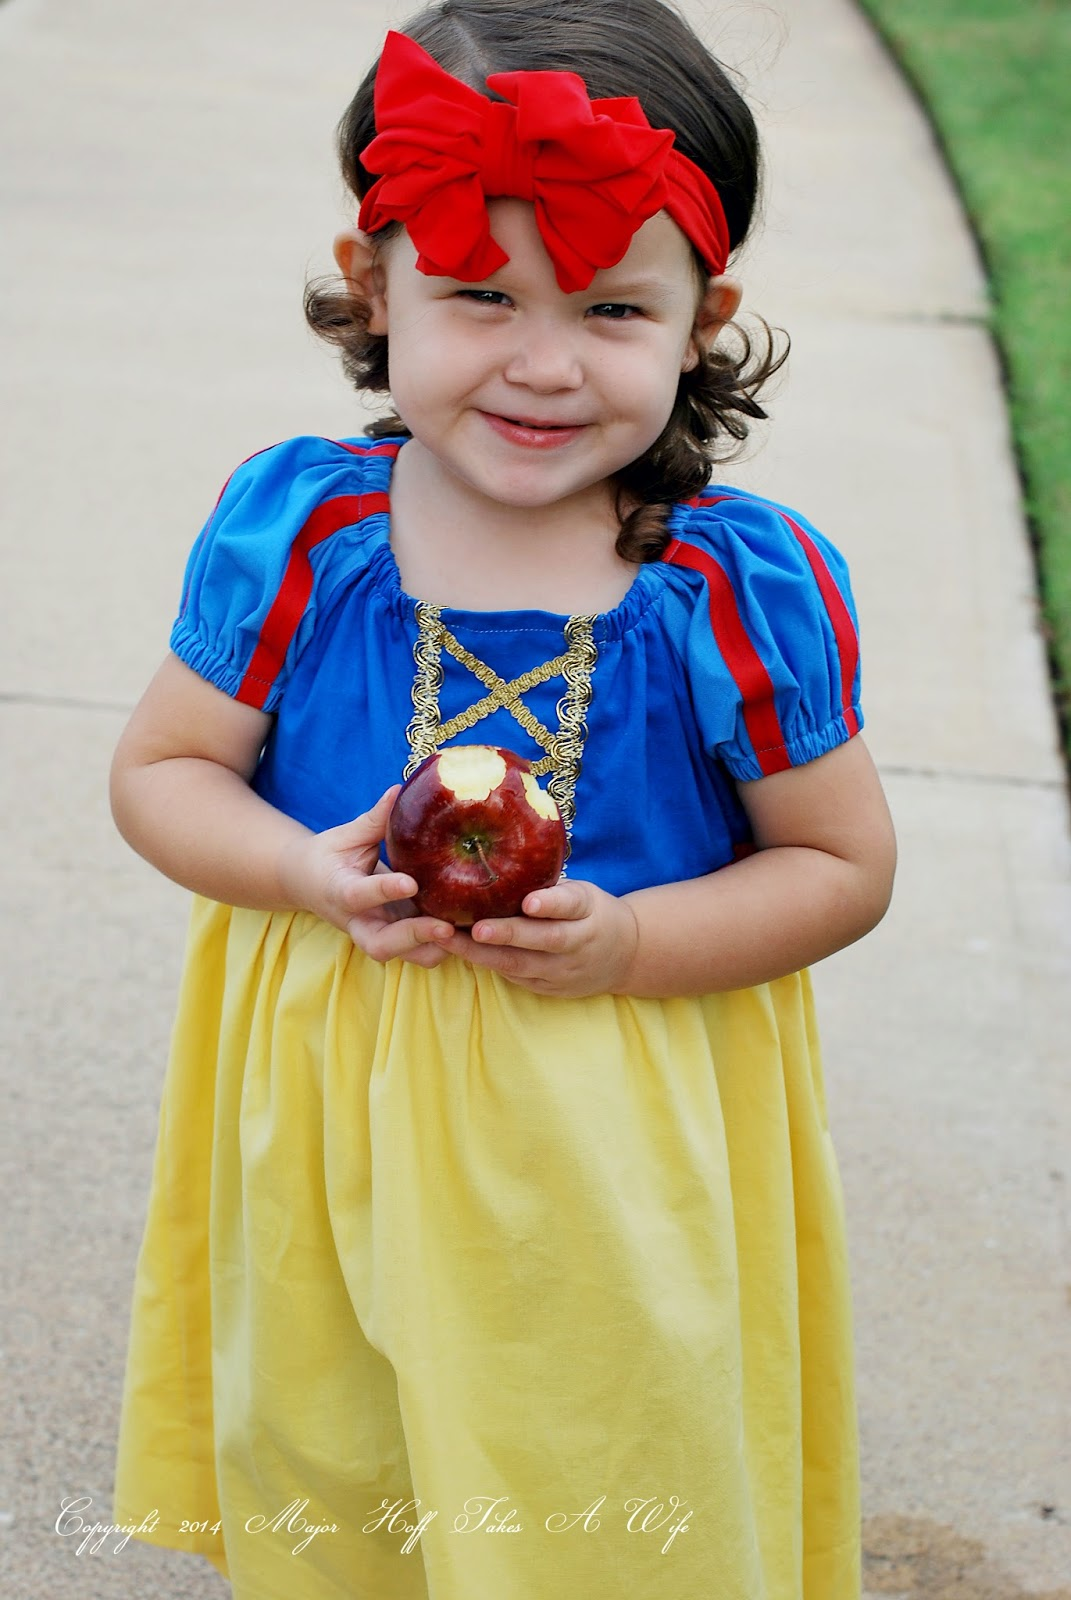 Snow white eats apple